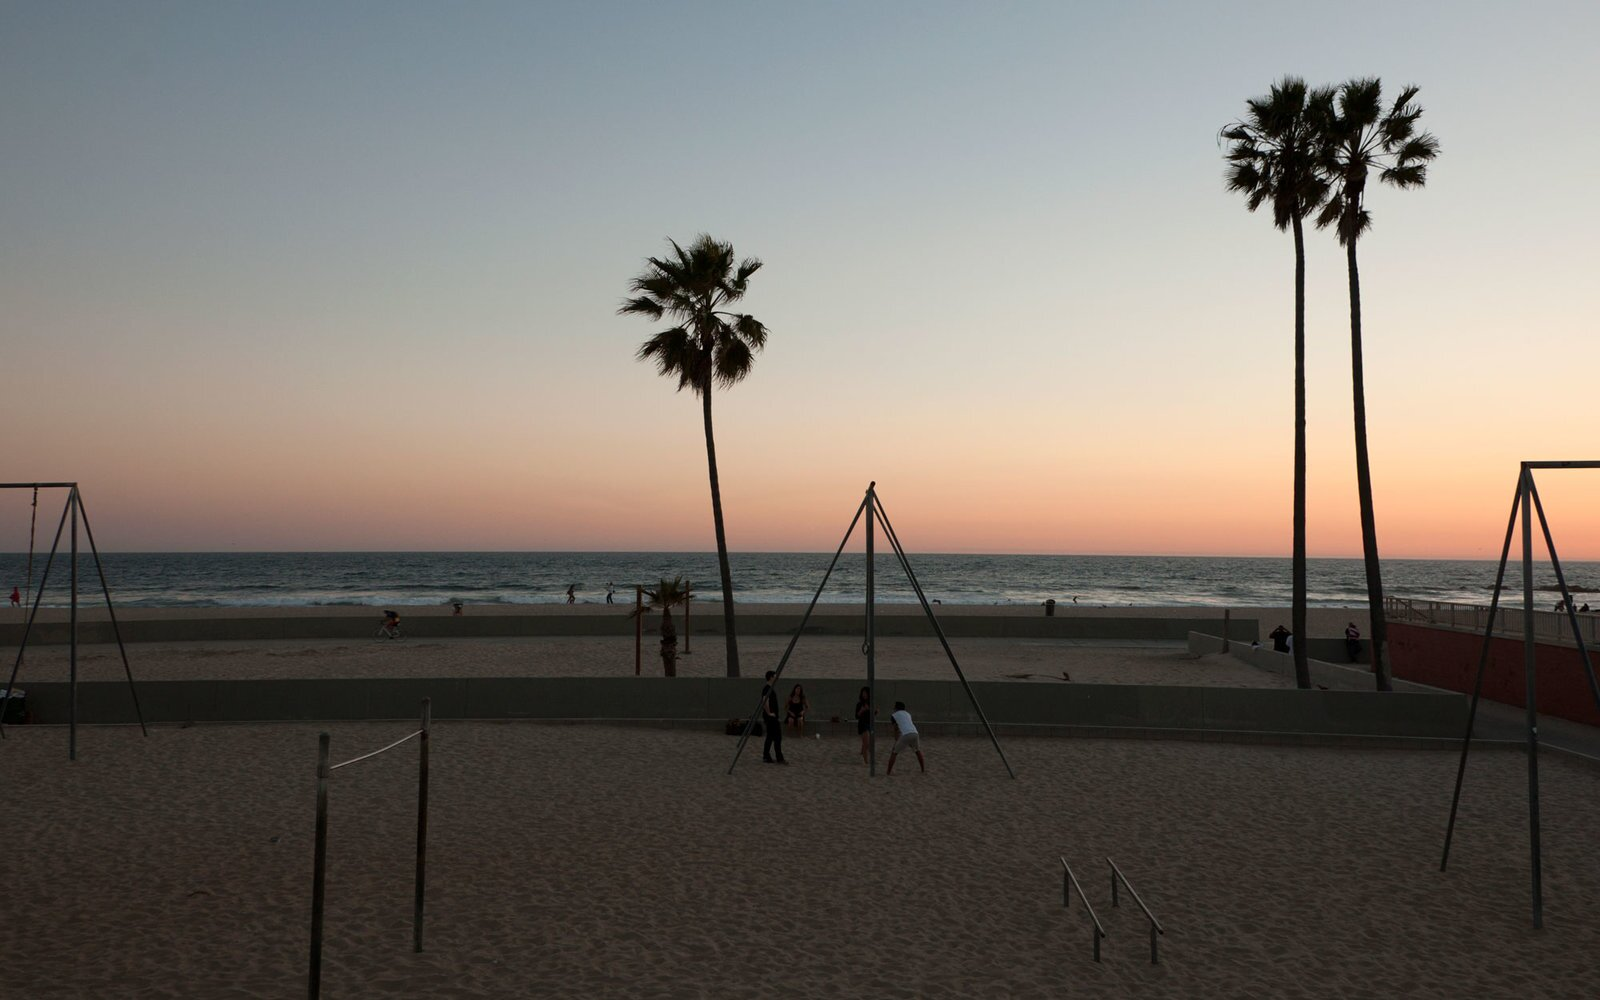 d86fcee8bb Best Beaches in California - Beach Holidays for Couples, Singles and ...